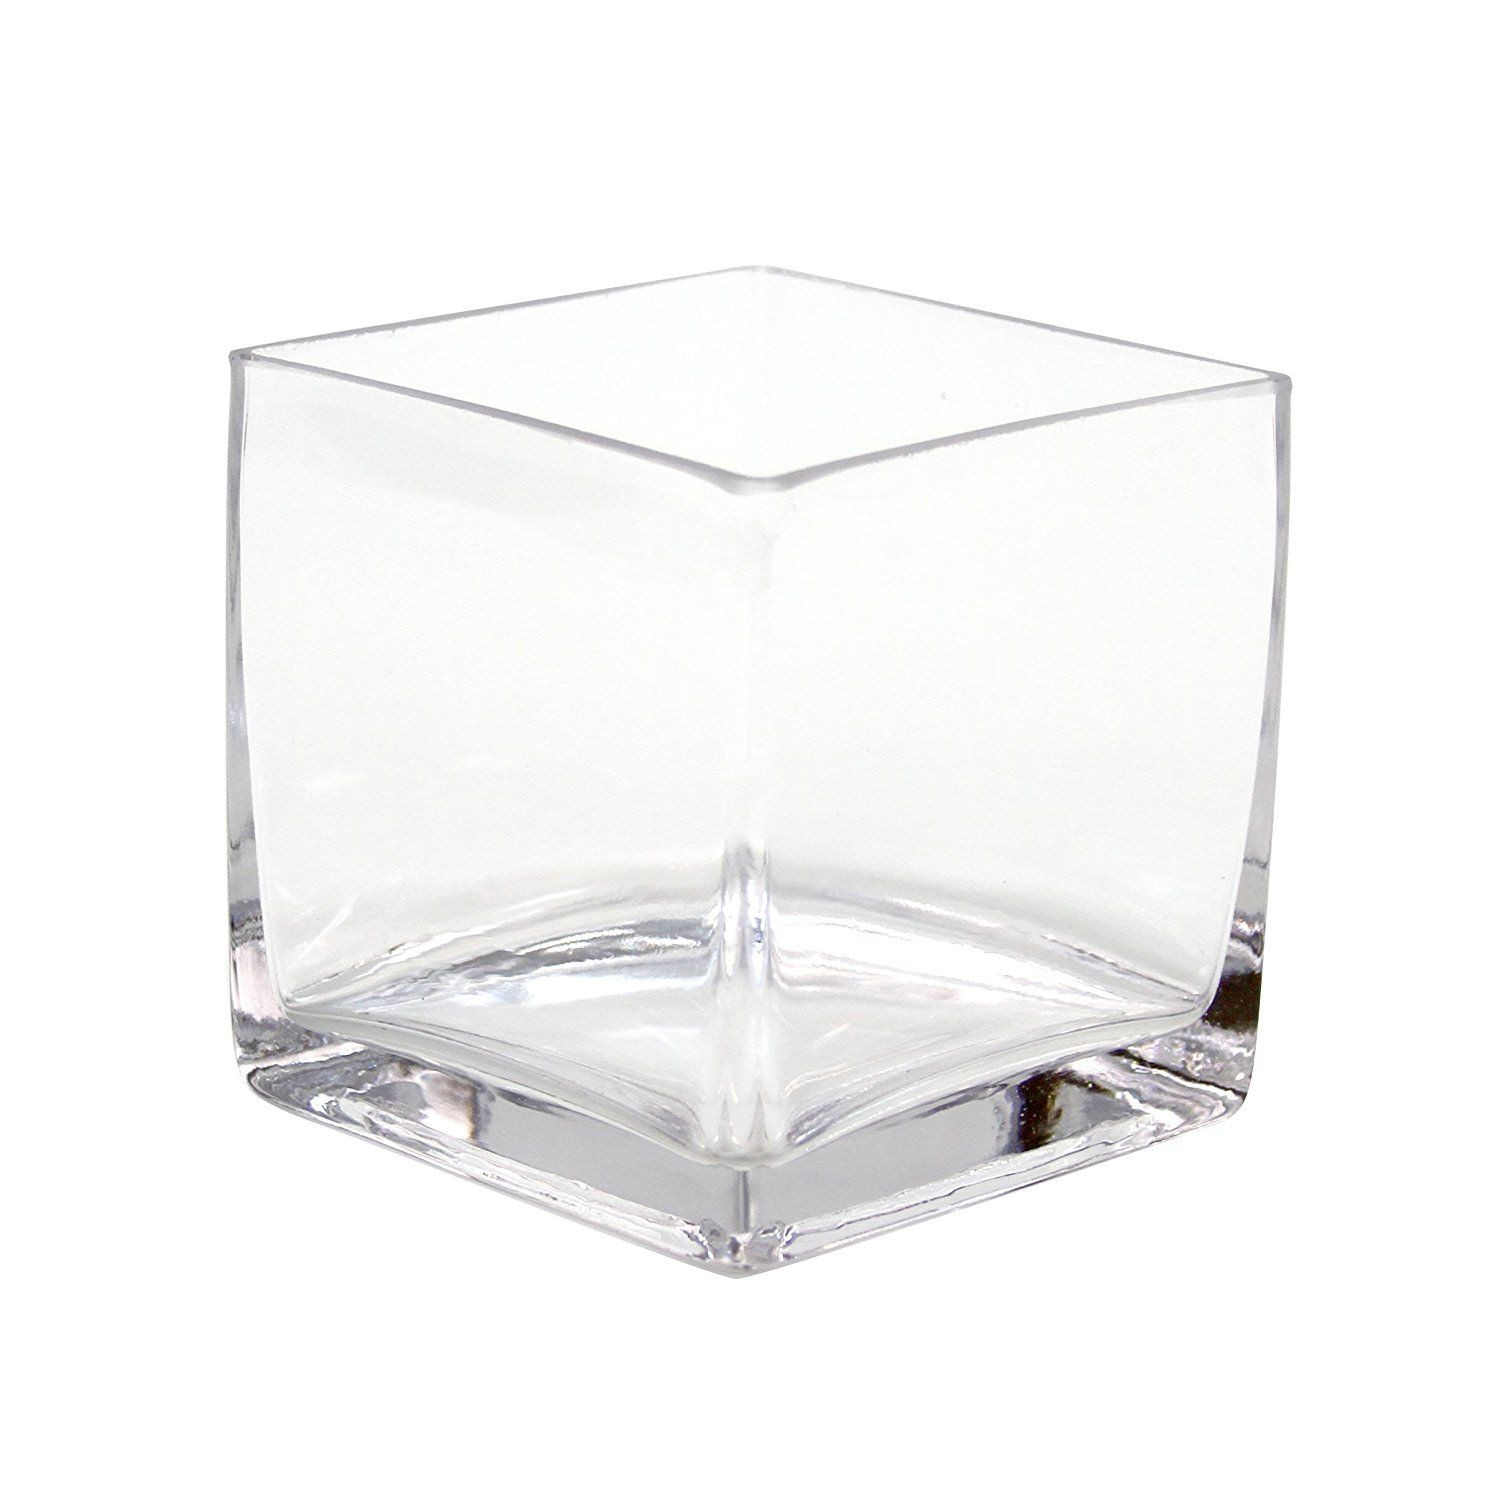 5 inch square vases bulk of koyal wholesale 404343 12 pack cube square glass vases 4 by 4 by 4 with regard to koyal wholesale 404343 12 pack cube square glass vases 4 by 4 by 4